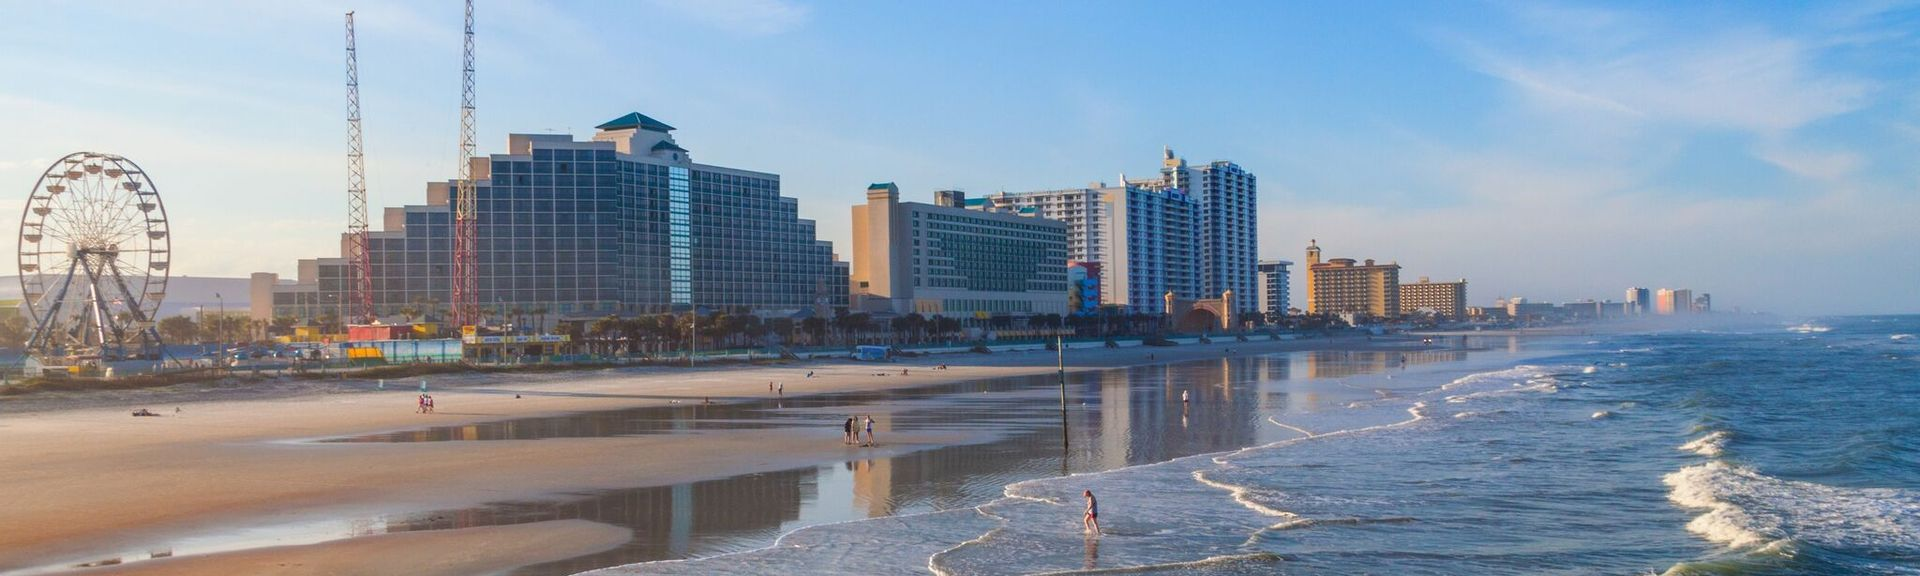 Daytona Beach, Florida, United States of America